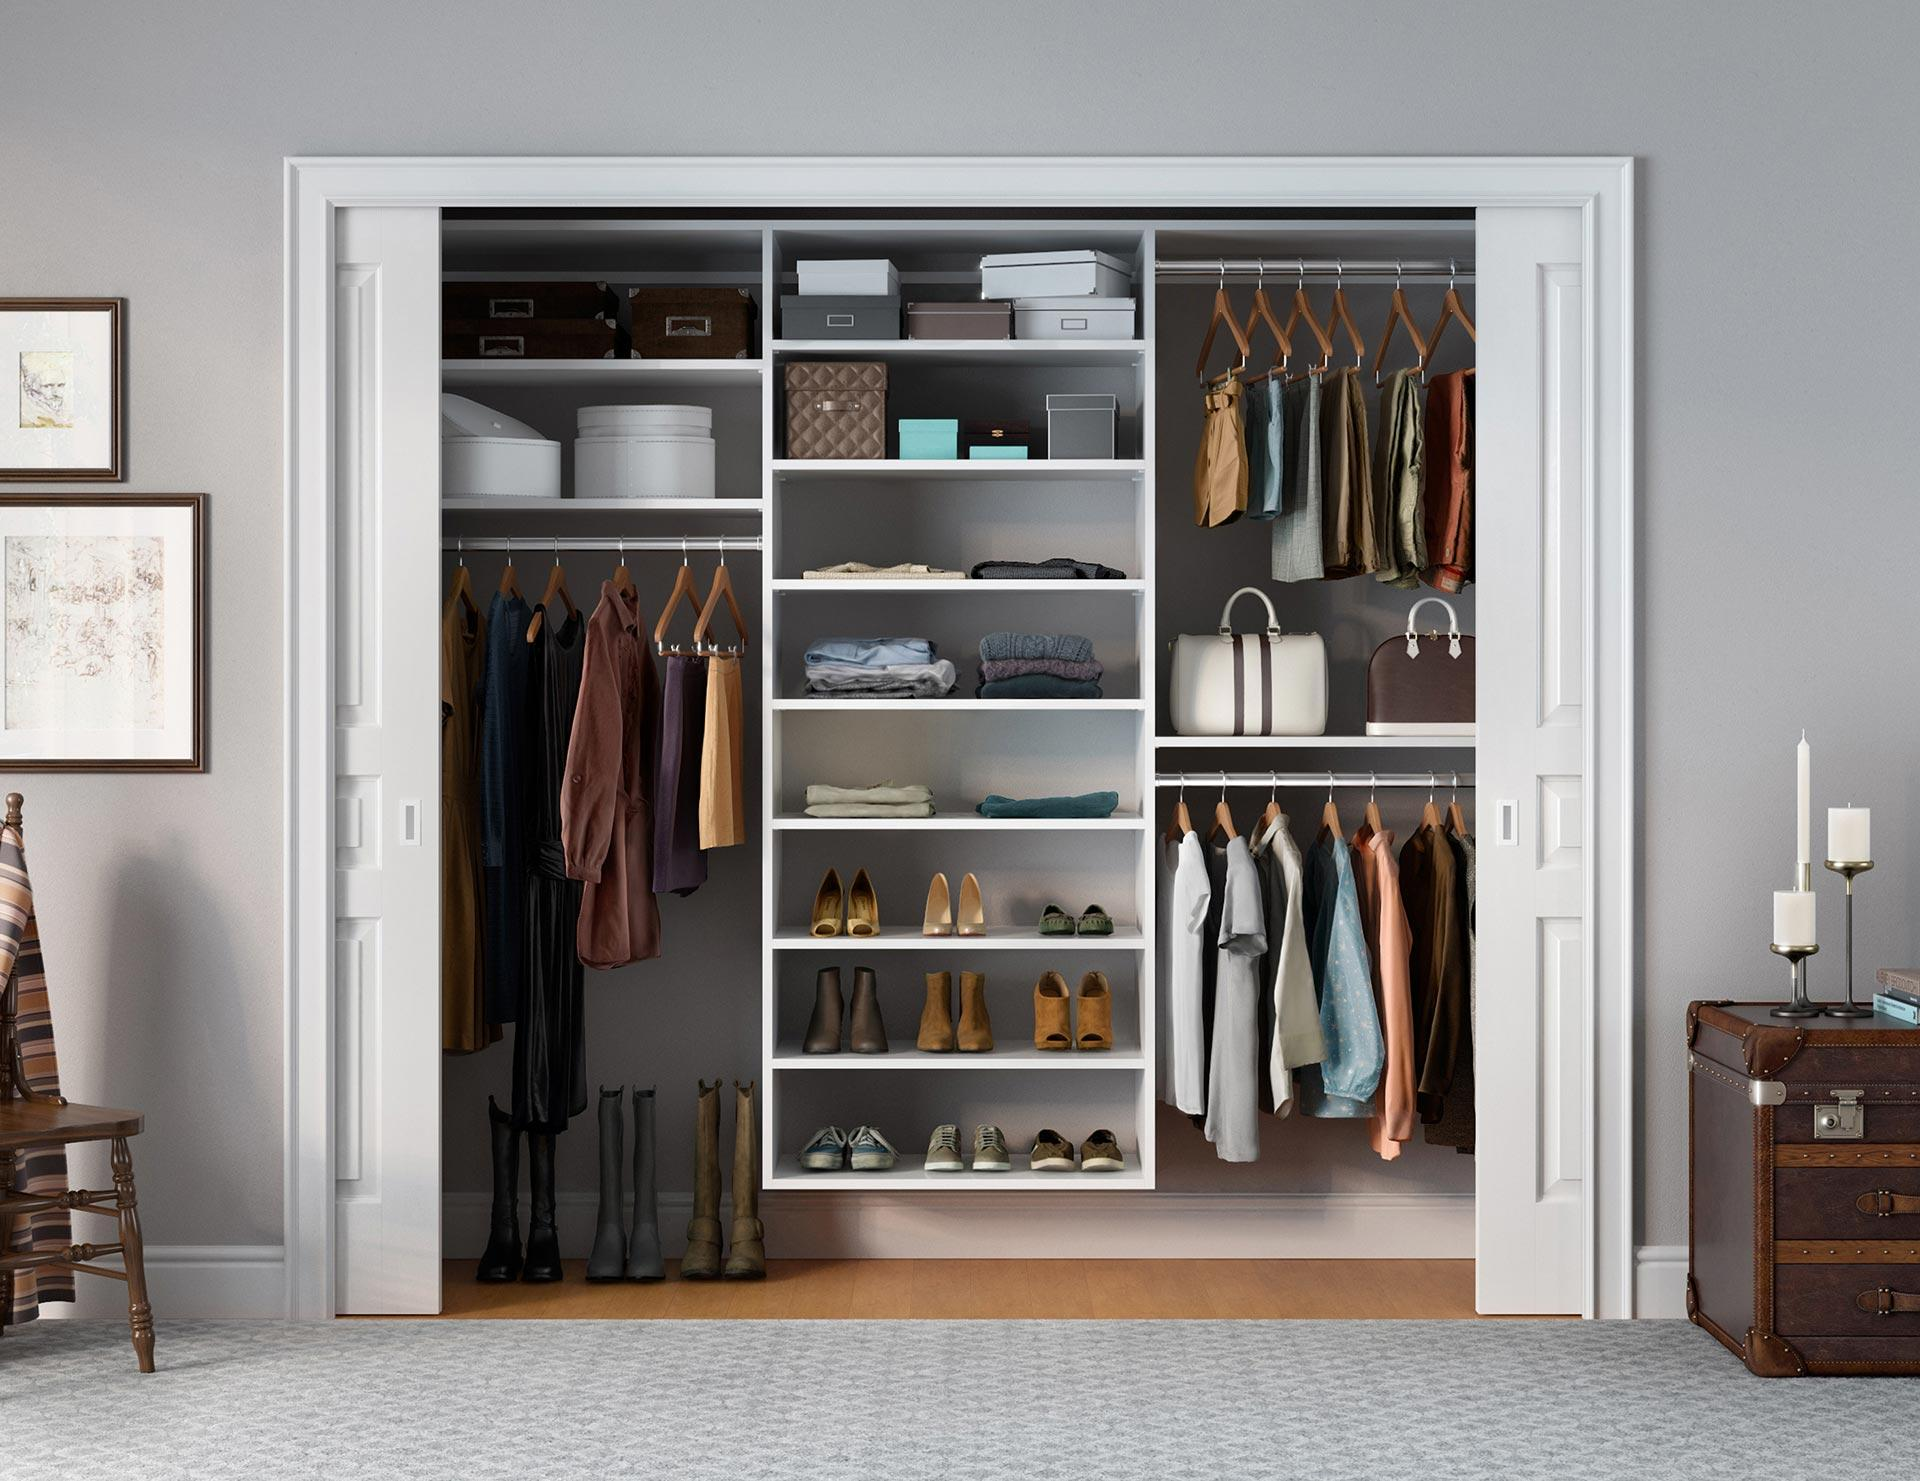 reach in closets designs   ideas by california closets cabinet hardware template home depot cabinet hardware home depot canada